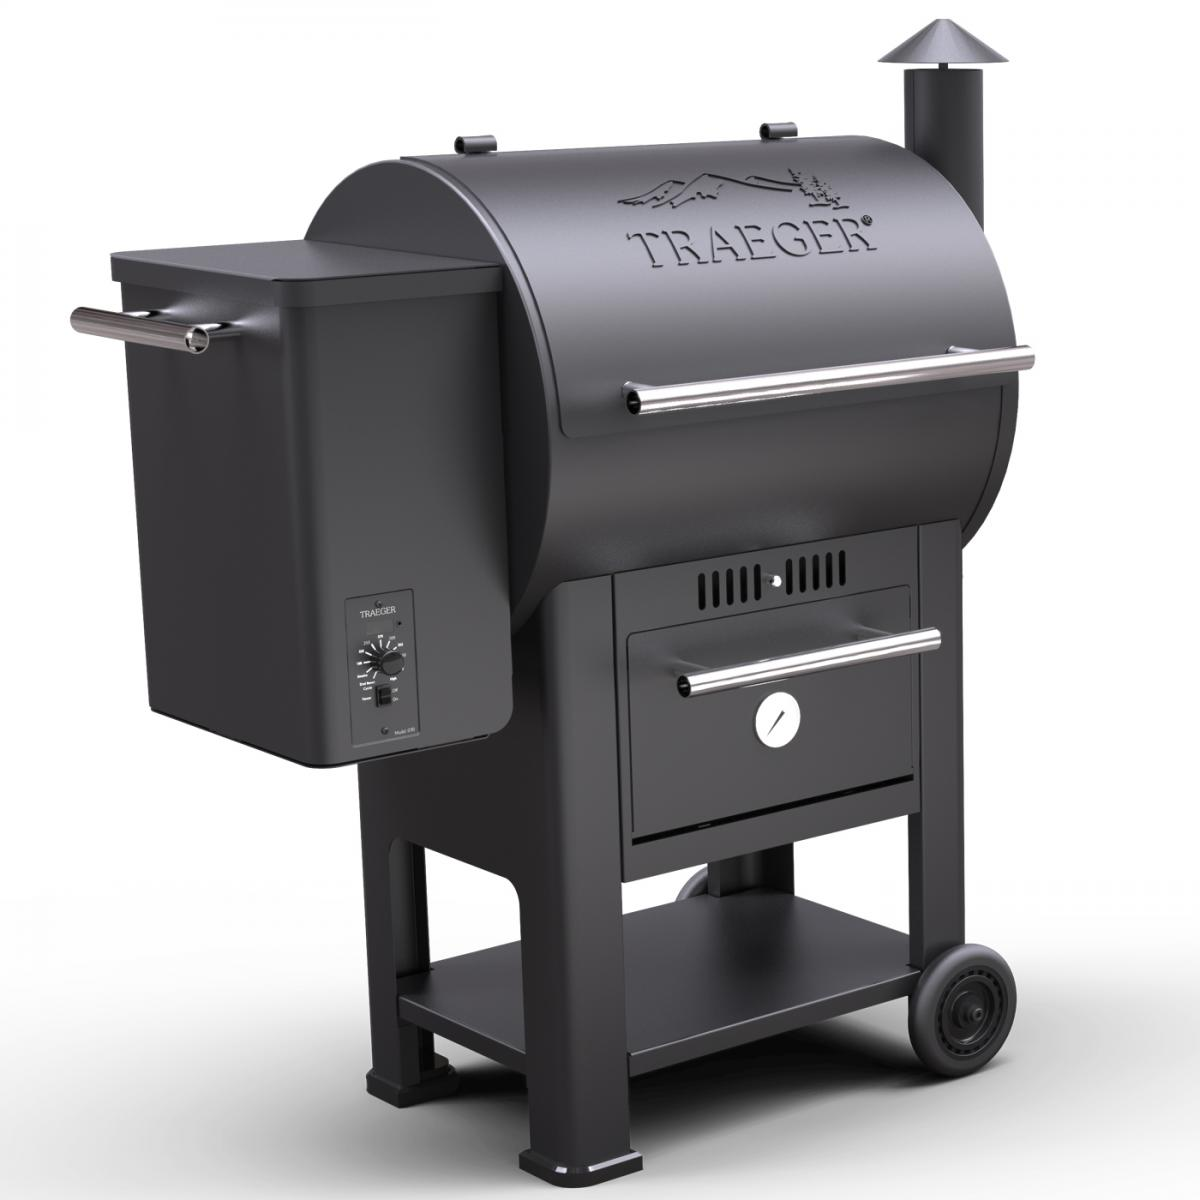 traeger century series 22 wood pellet grill bbq. Black Bedroom Furniture Sets. Home Design Ideas